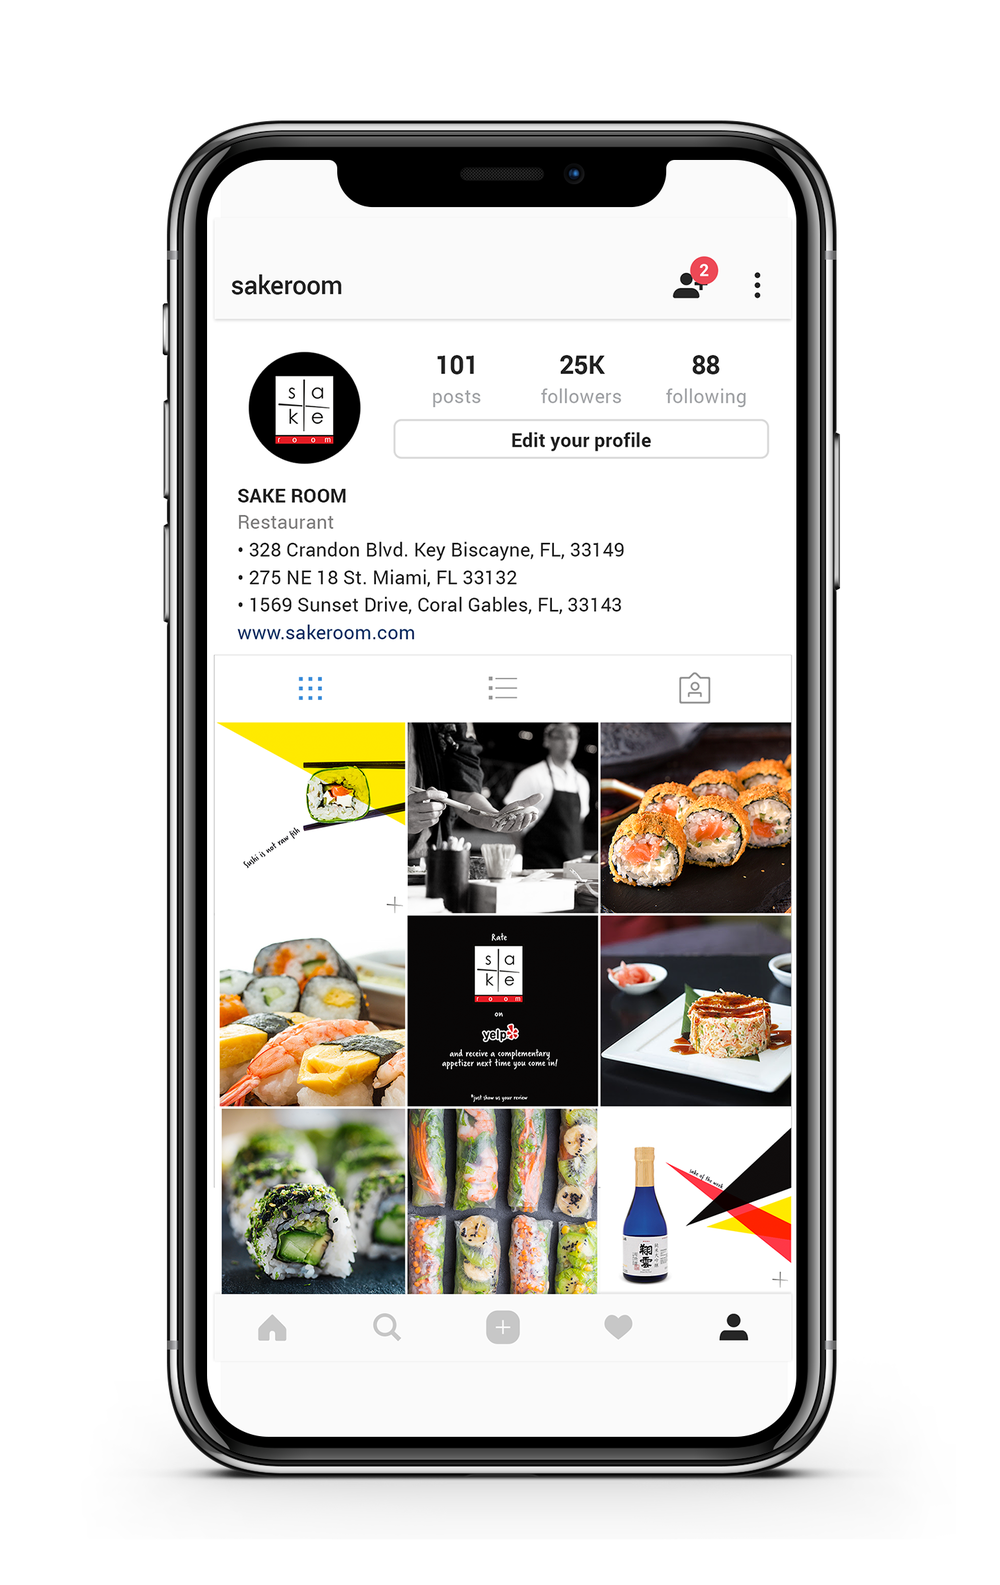 sushi restaurant - Social Media Branding, Content Creation + Curation, Restaurant Review and Traffic Strategy